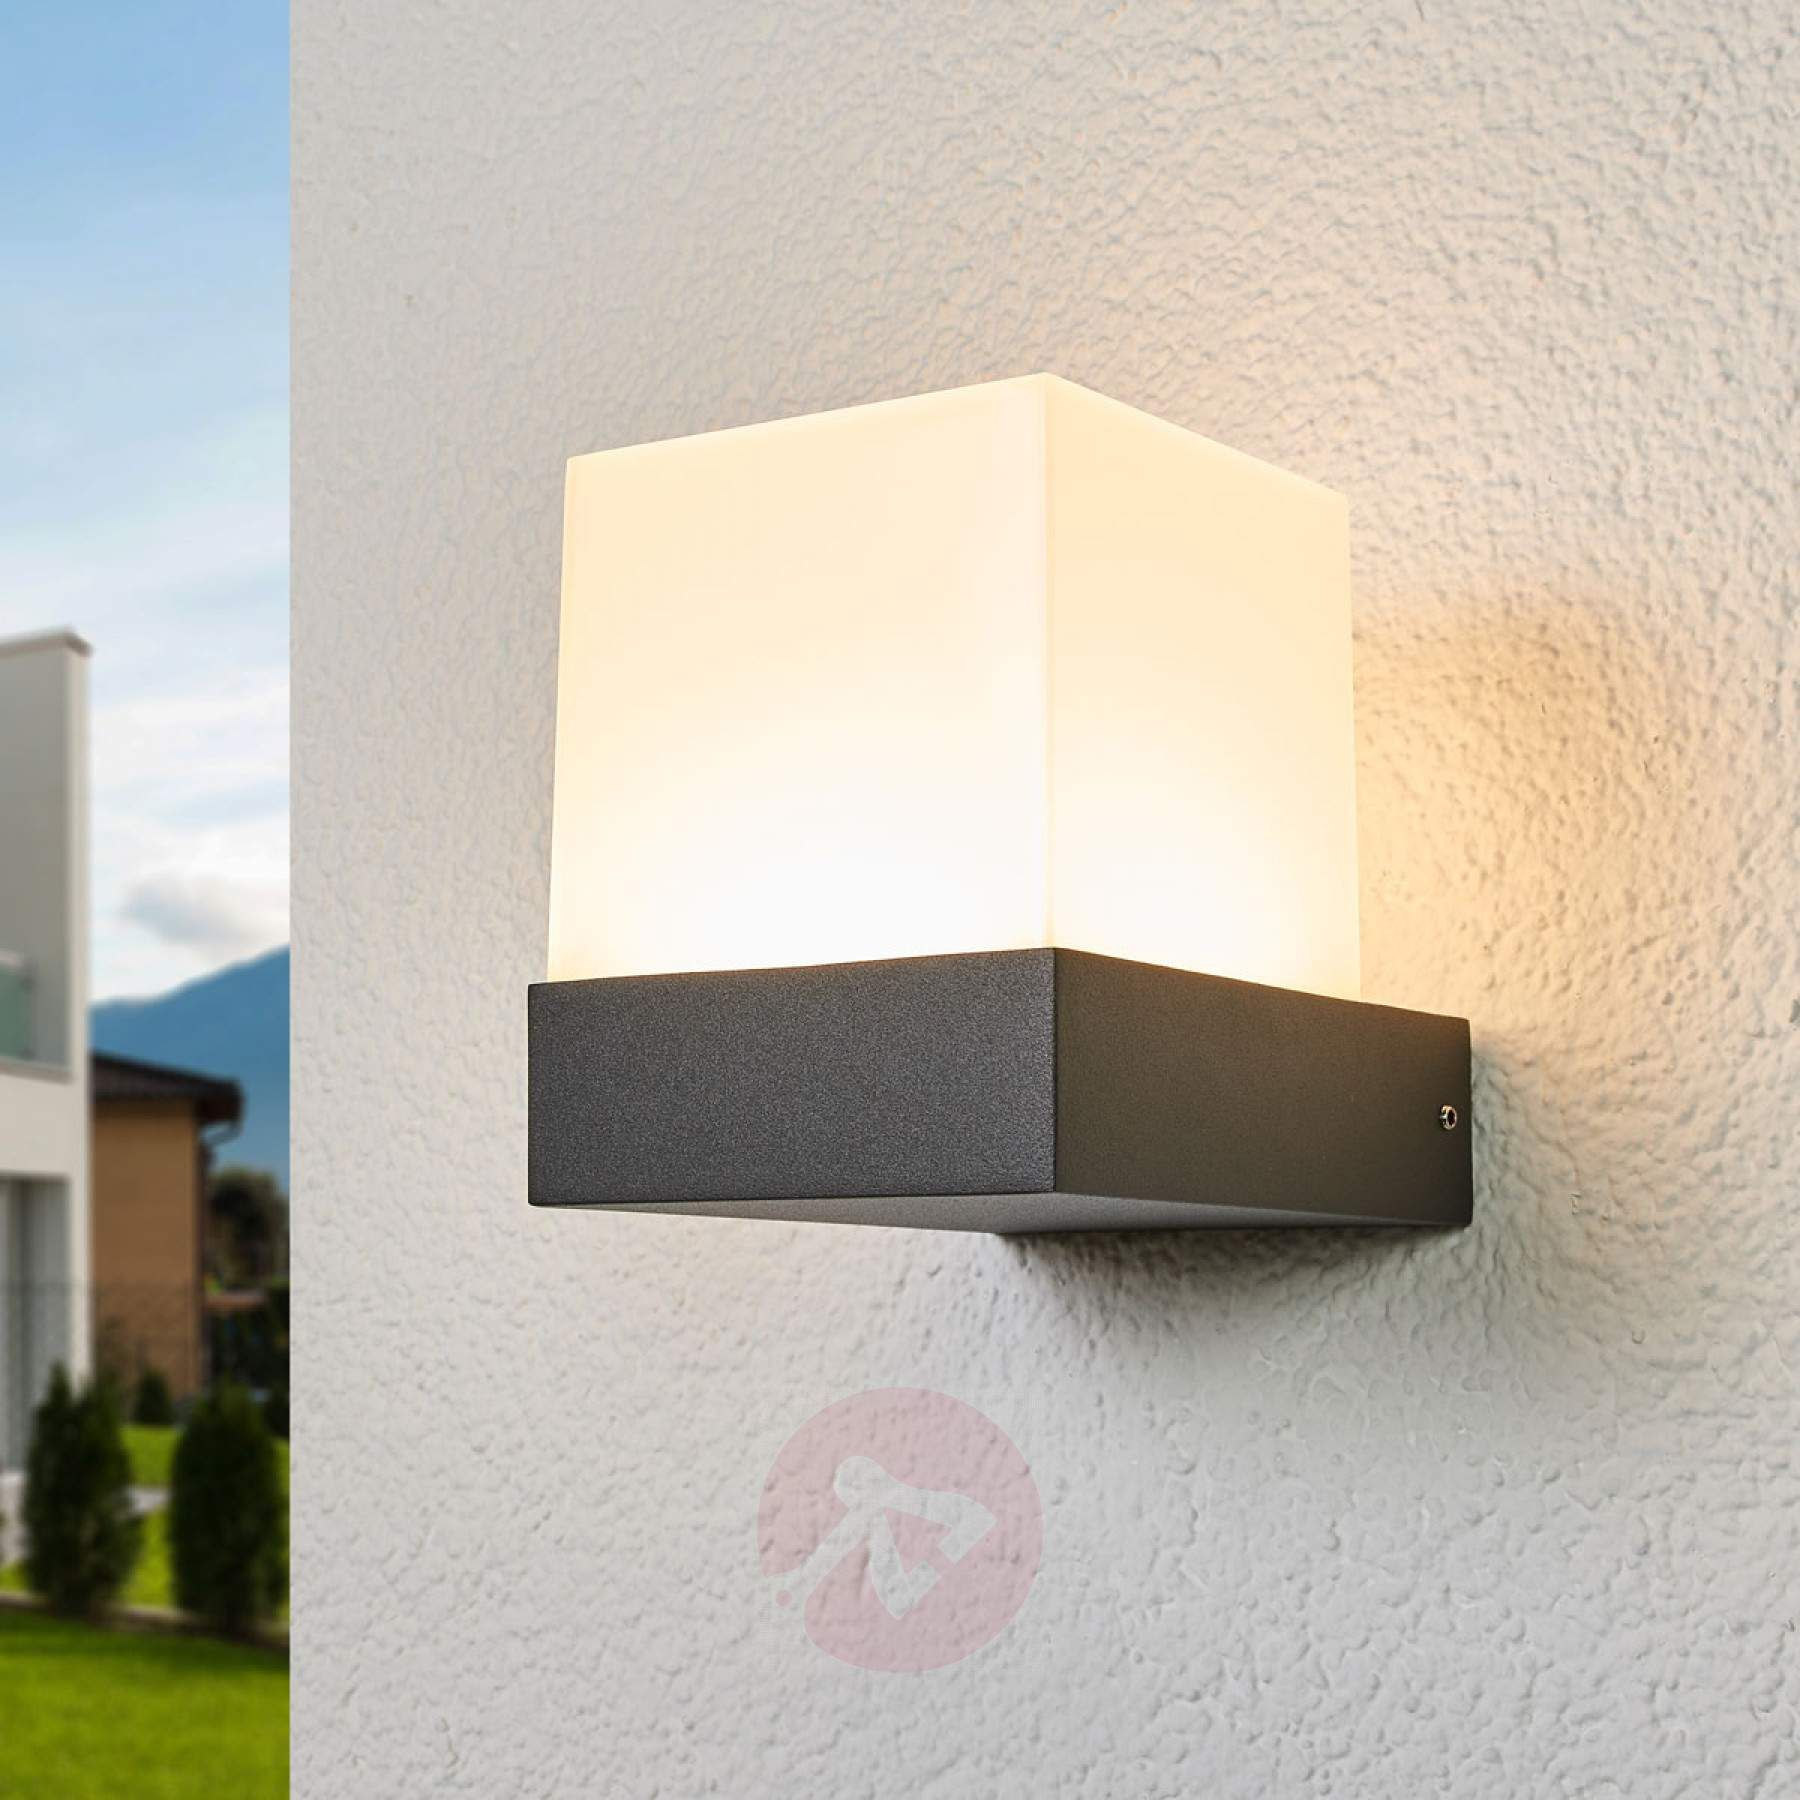 Led Outdoor Wall Light In Cube Shape